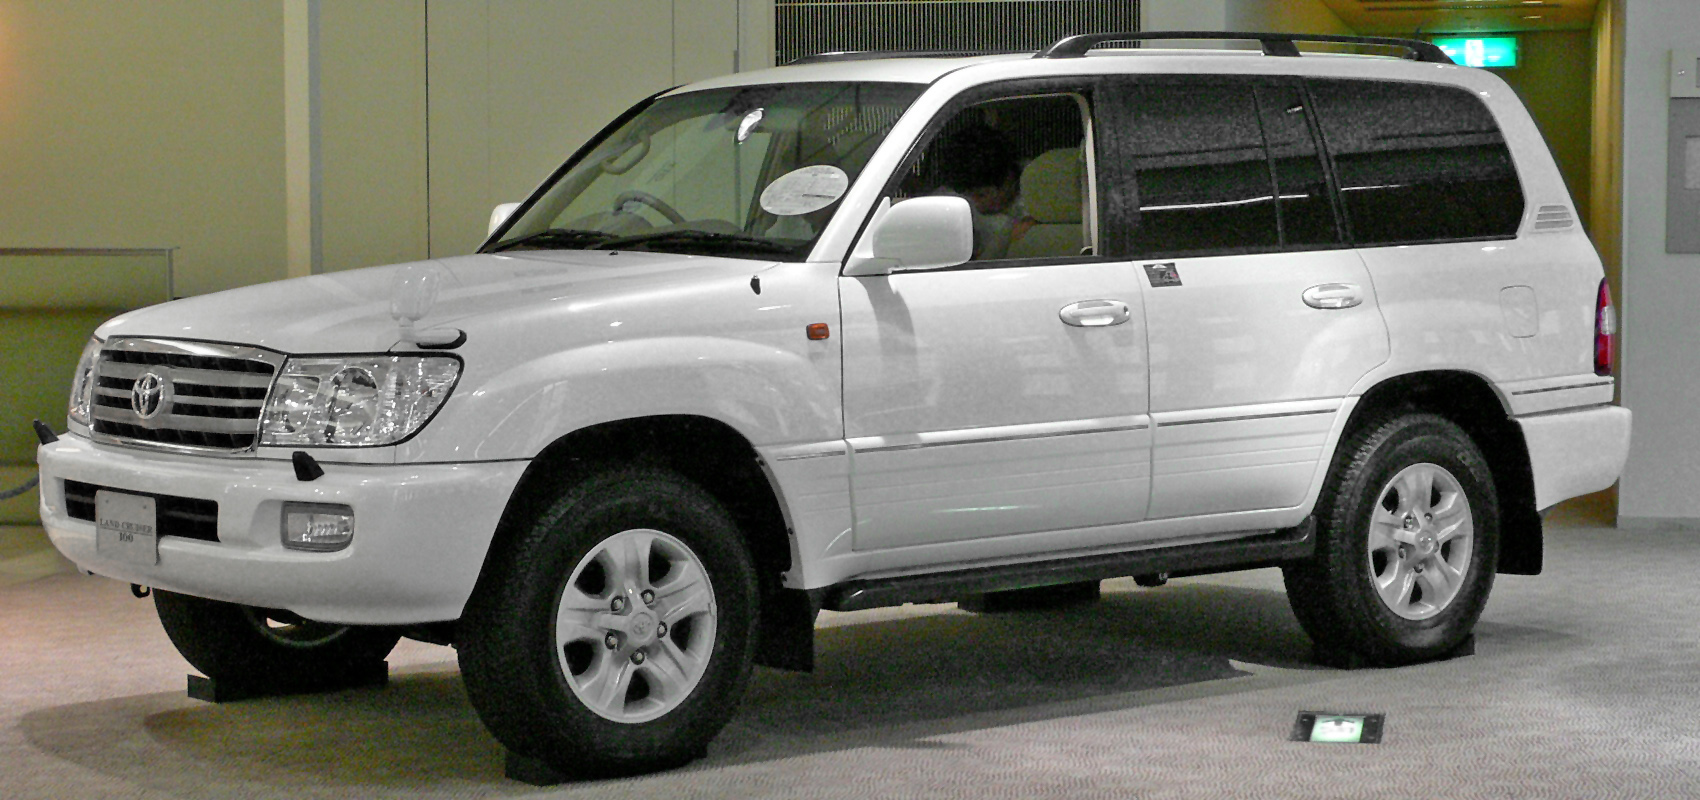 2002 Toyota Land Cruiser #4